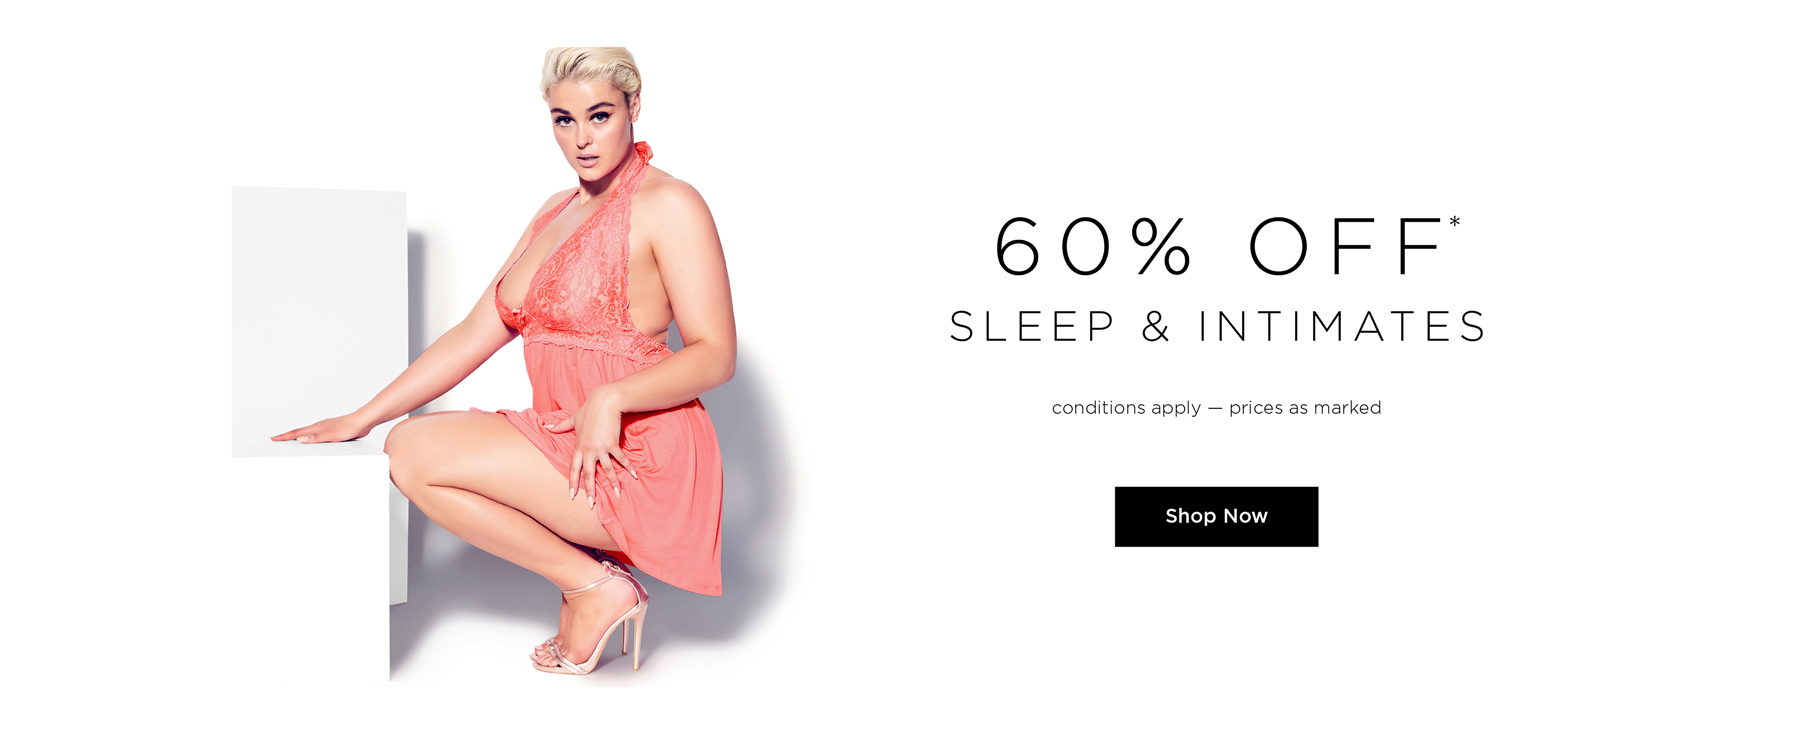 60% Off Sleep & Intimates. Conditions Apply - Prices as marked. Shop Sleepwear.